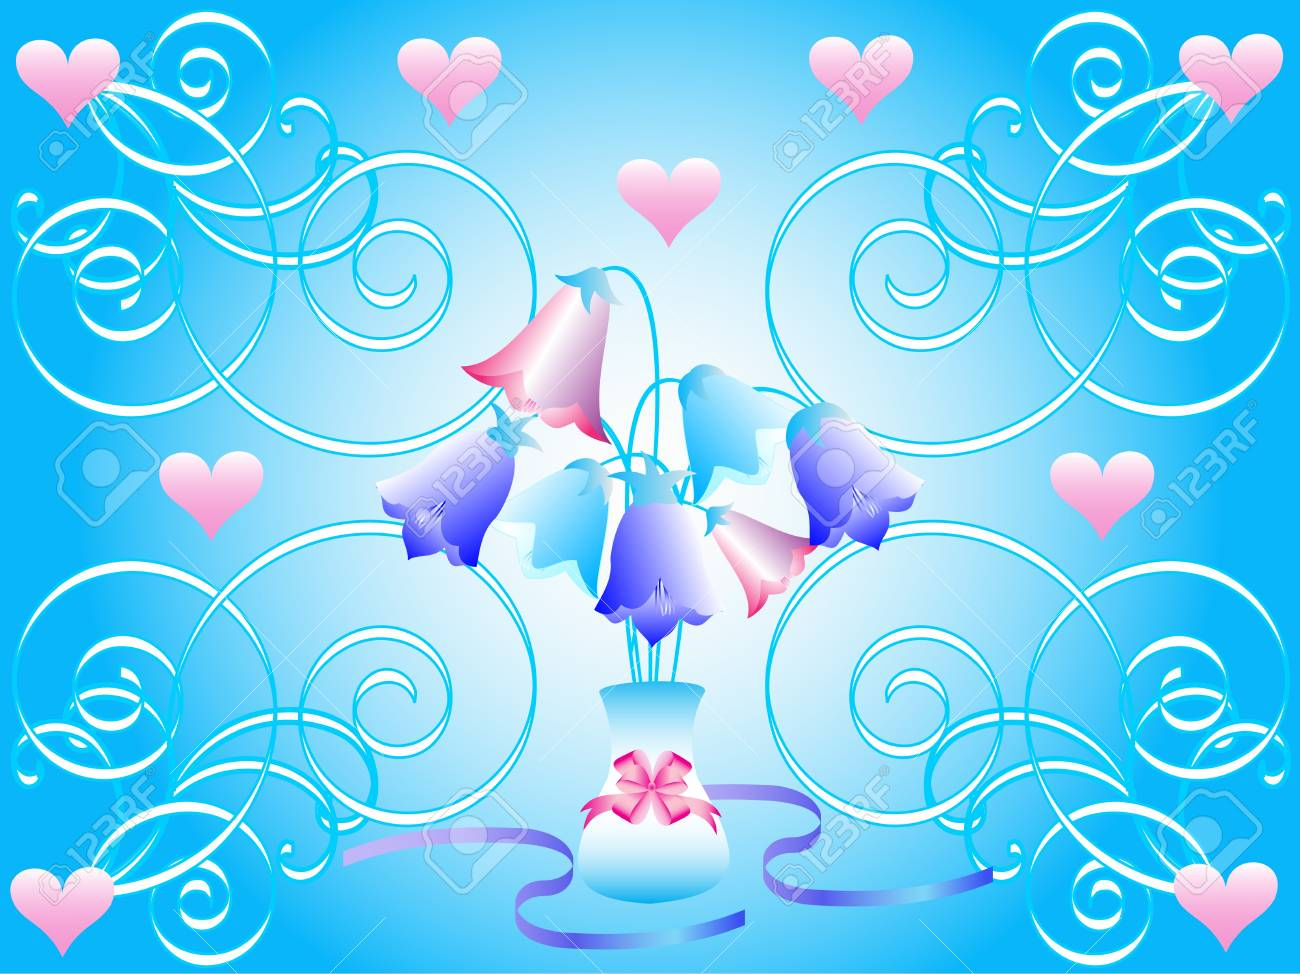 abstract floral vector illustration Valentine Stock Vector - 11658305